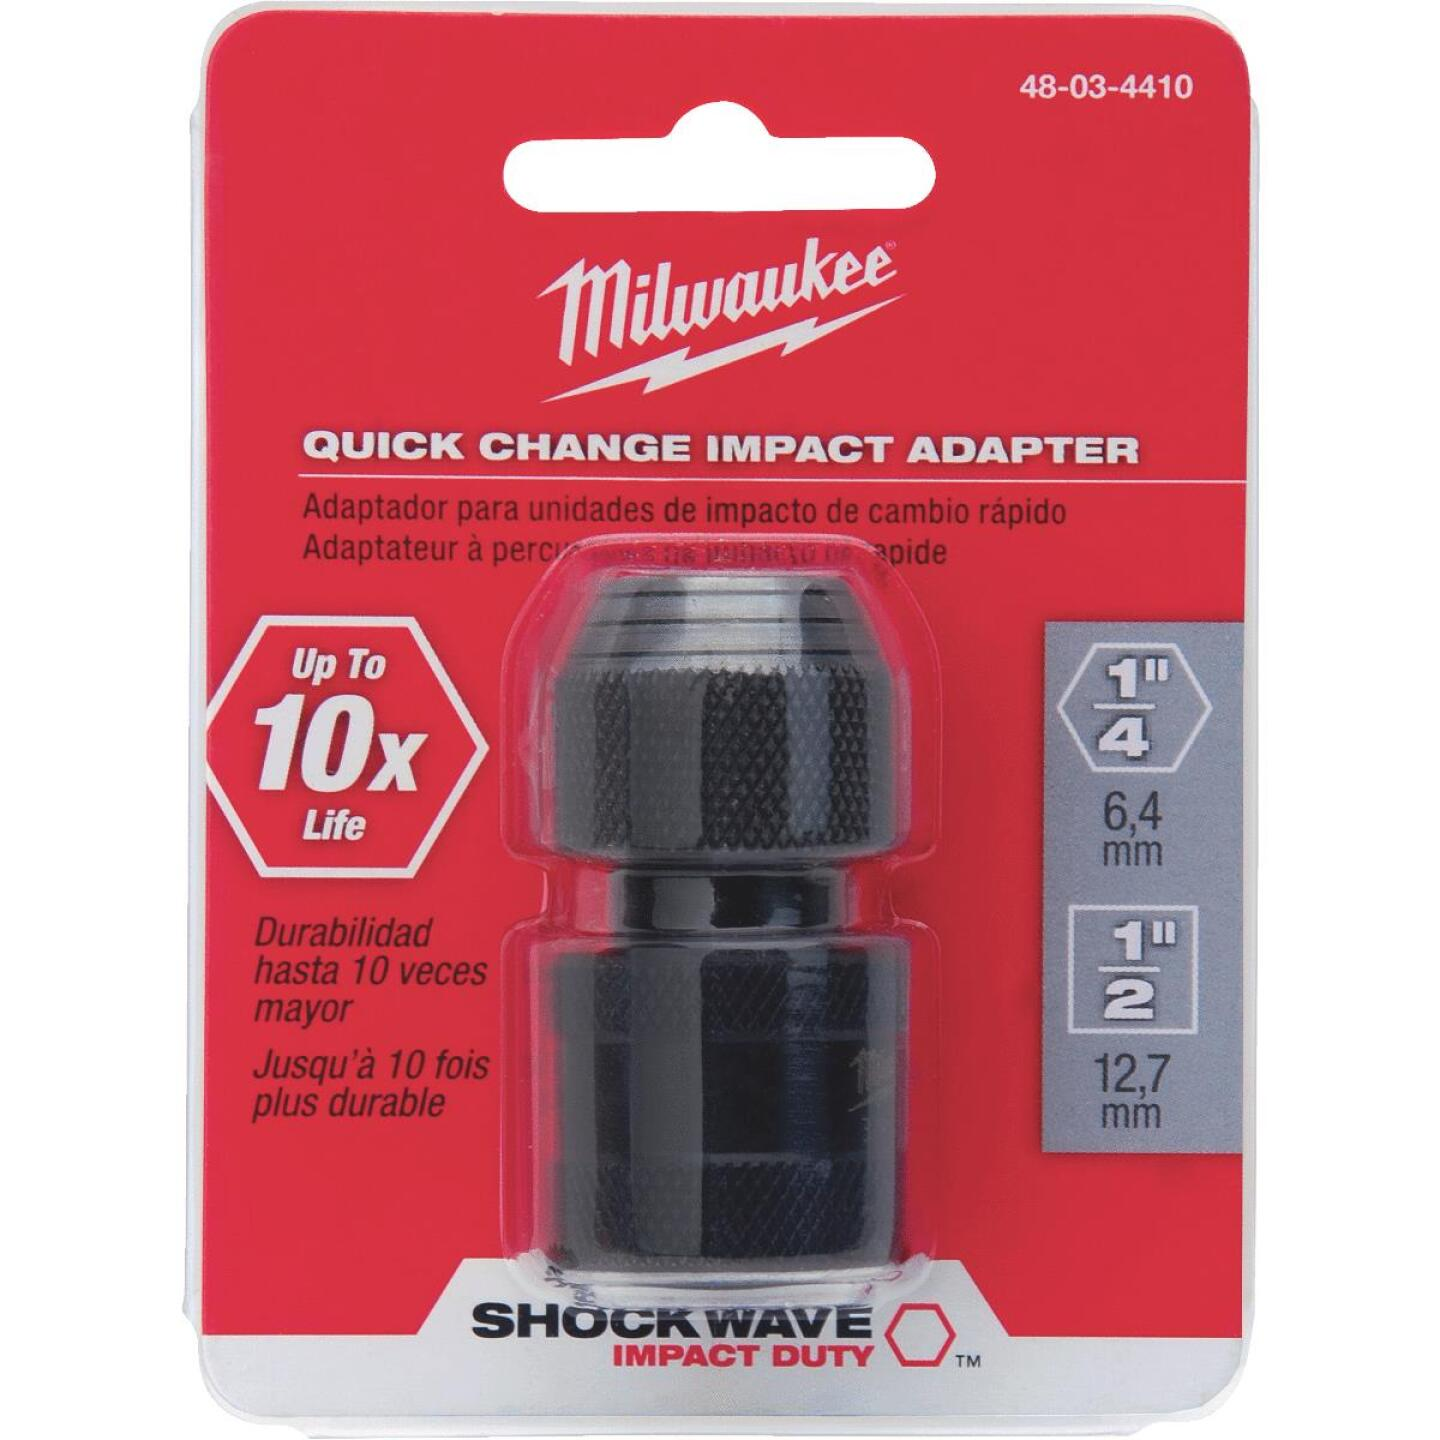 Milwaukee 1/2 In. Square 1-7/8 In. L. Socket Adapter Image 2